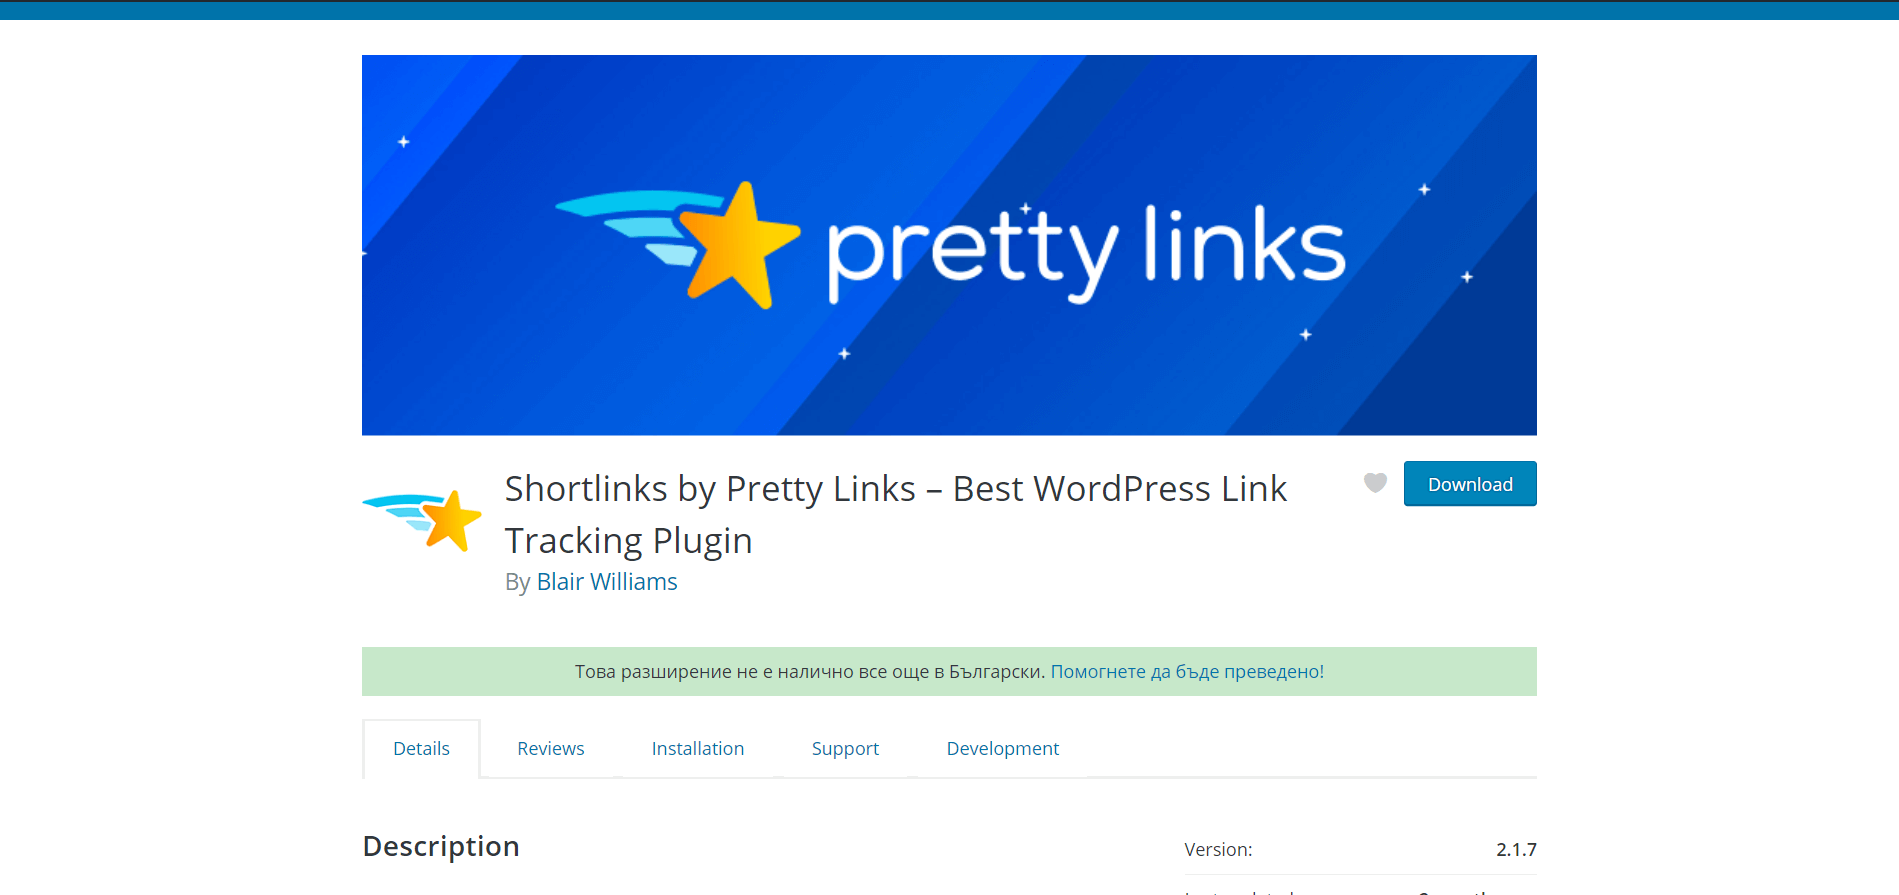 Configure Pretty Links